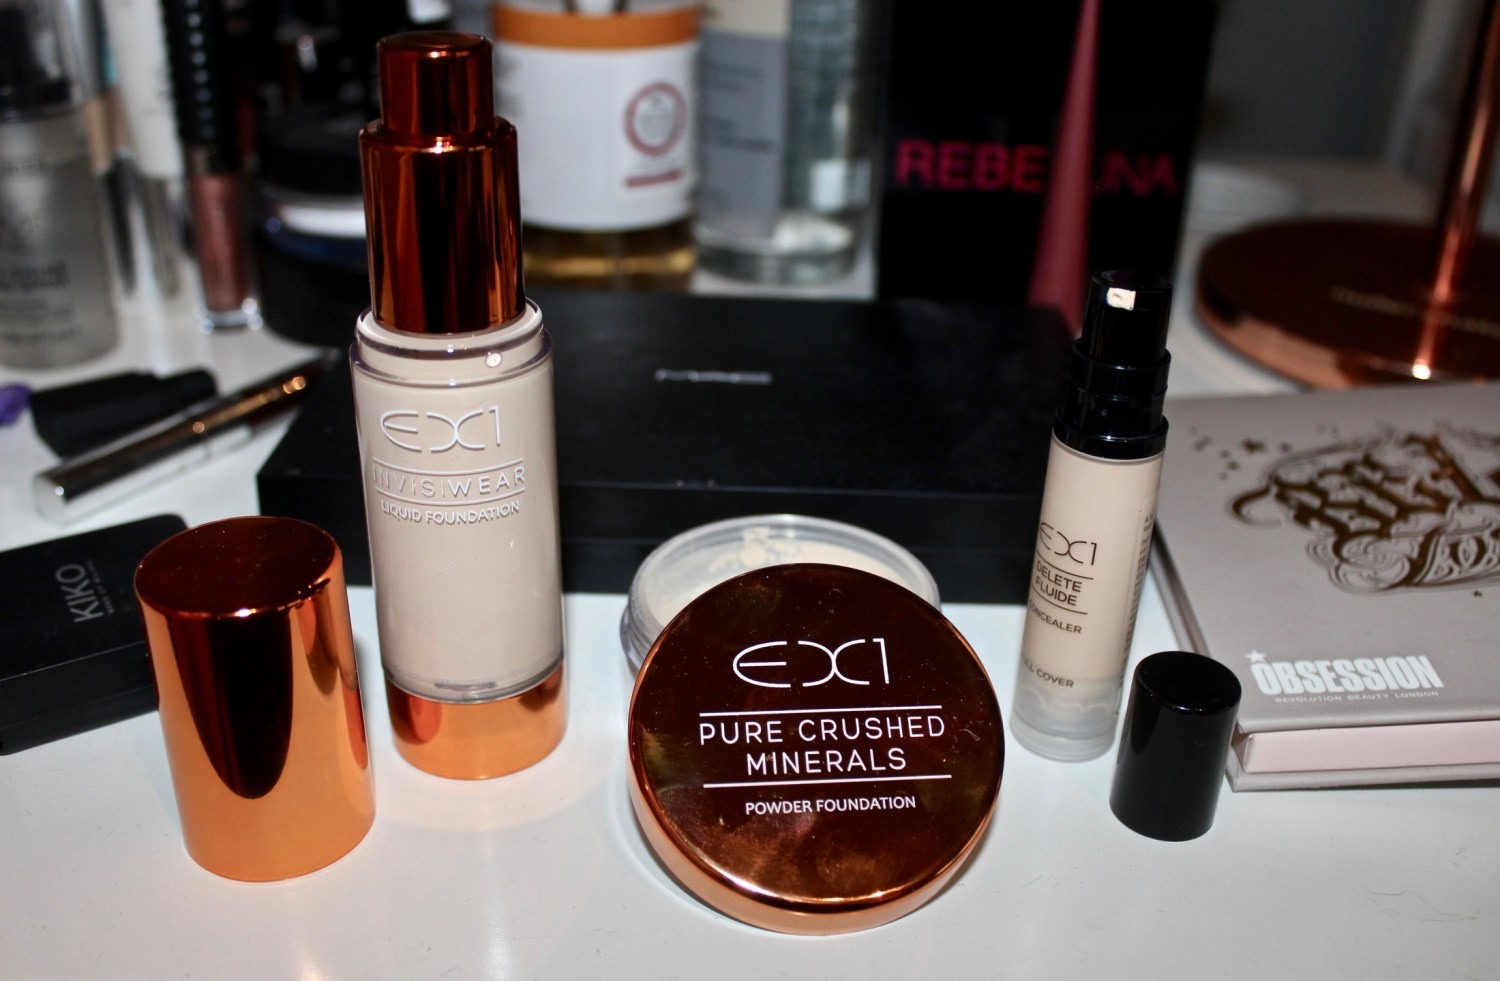 EX1 Cosmetics First Impressions